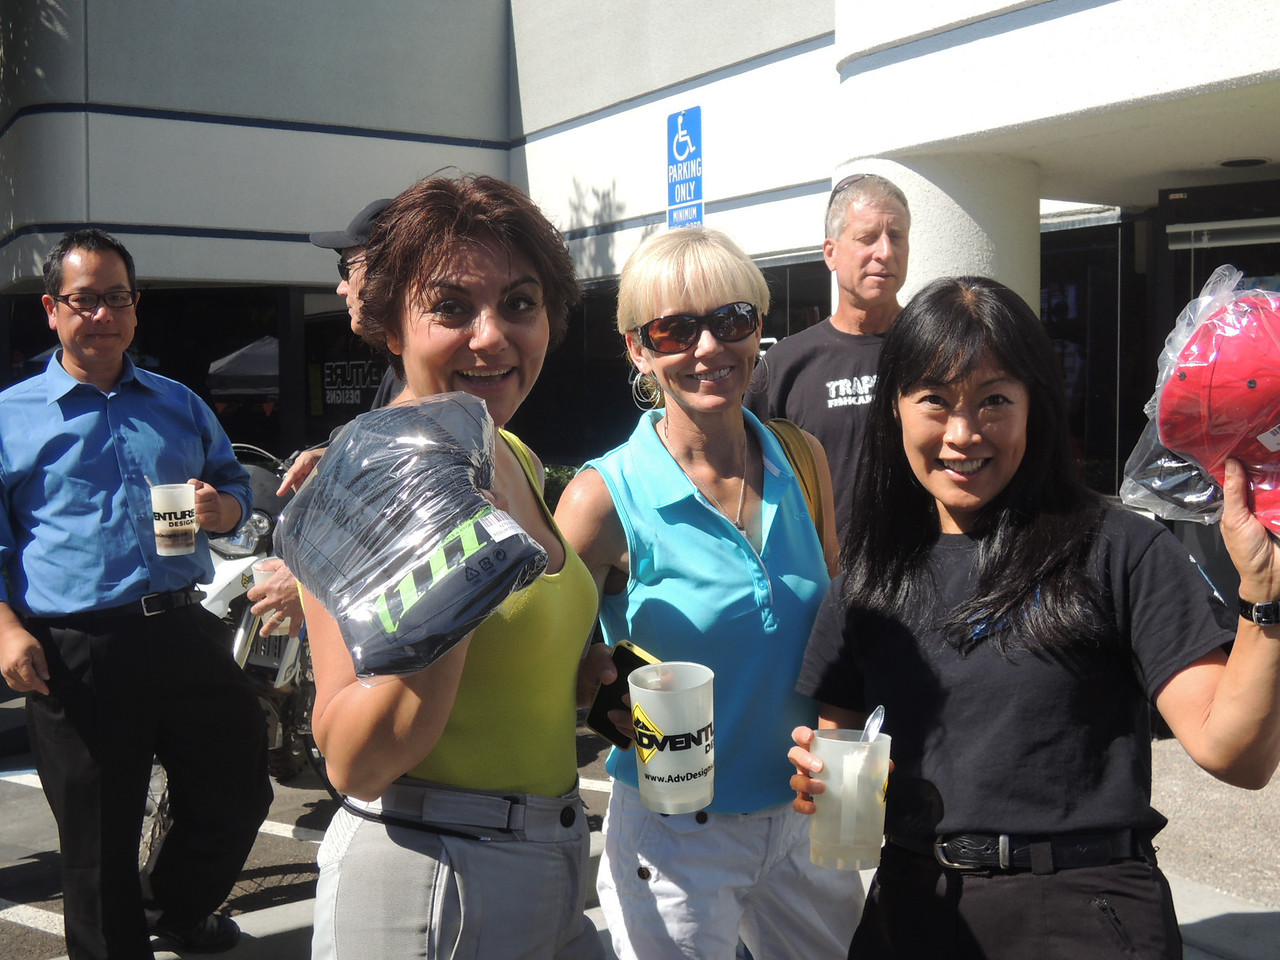 Slow Race winners Bita Malek and Mini display their prizes as the lovely Melanie joins in.